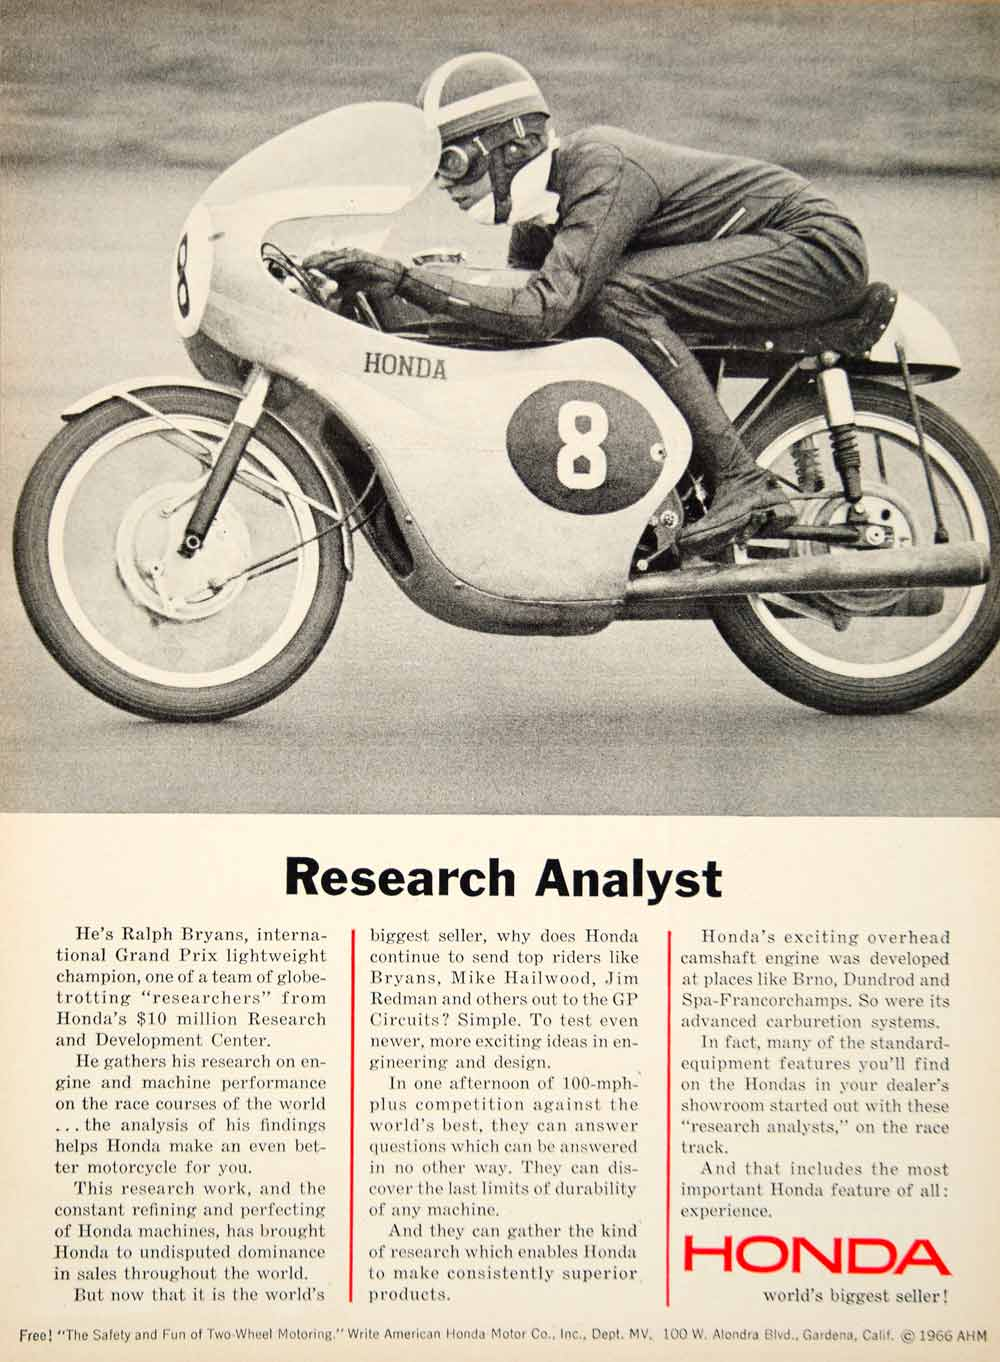 Honda motorcycle research analysis of the 1970s